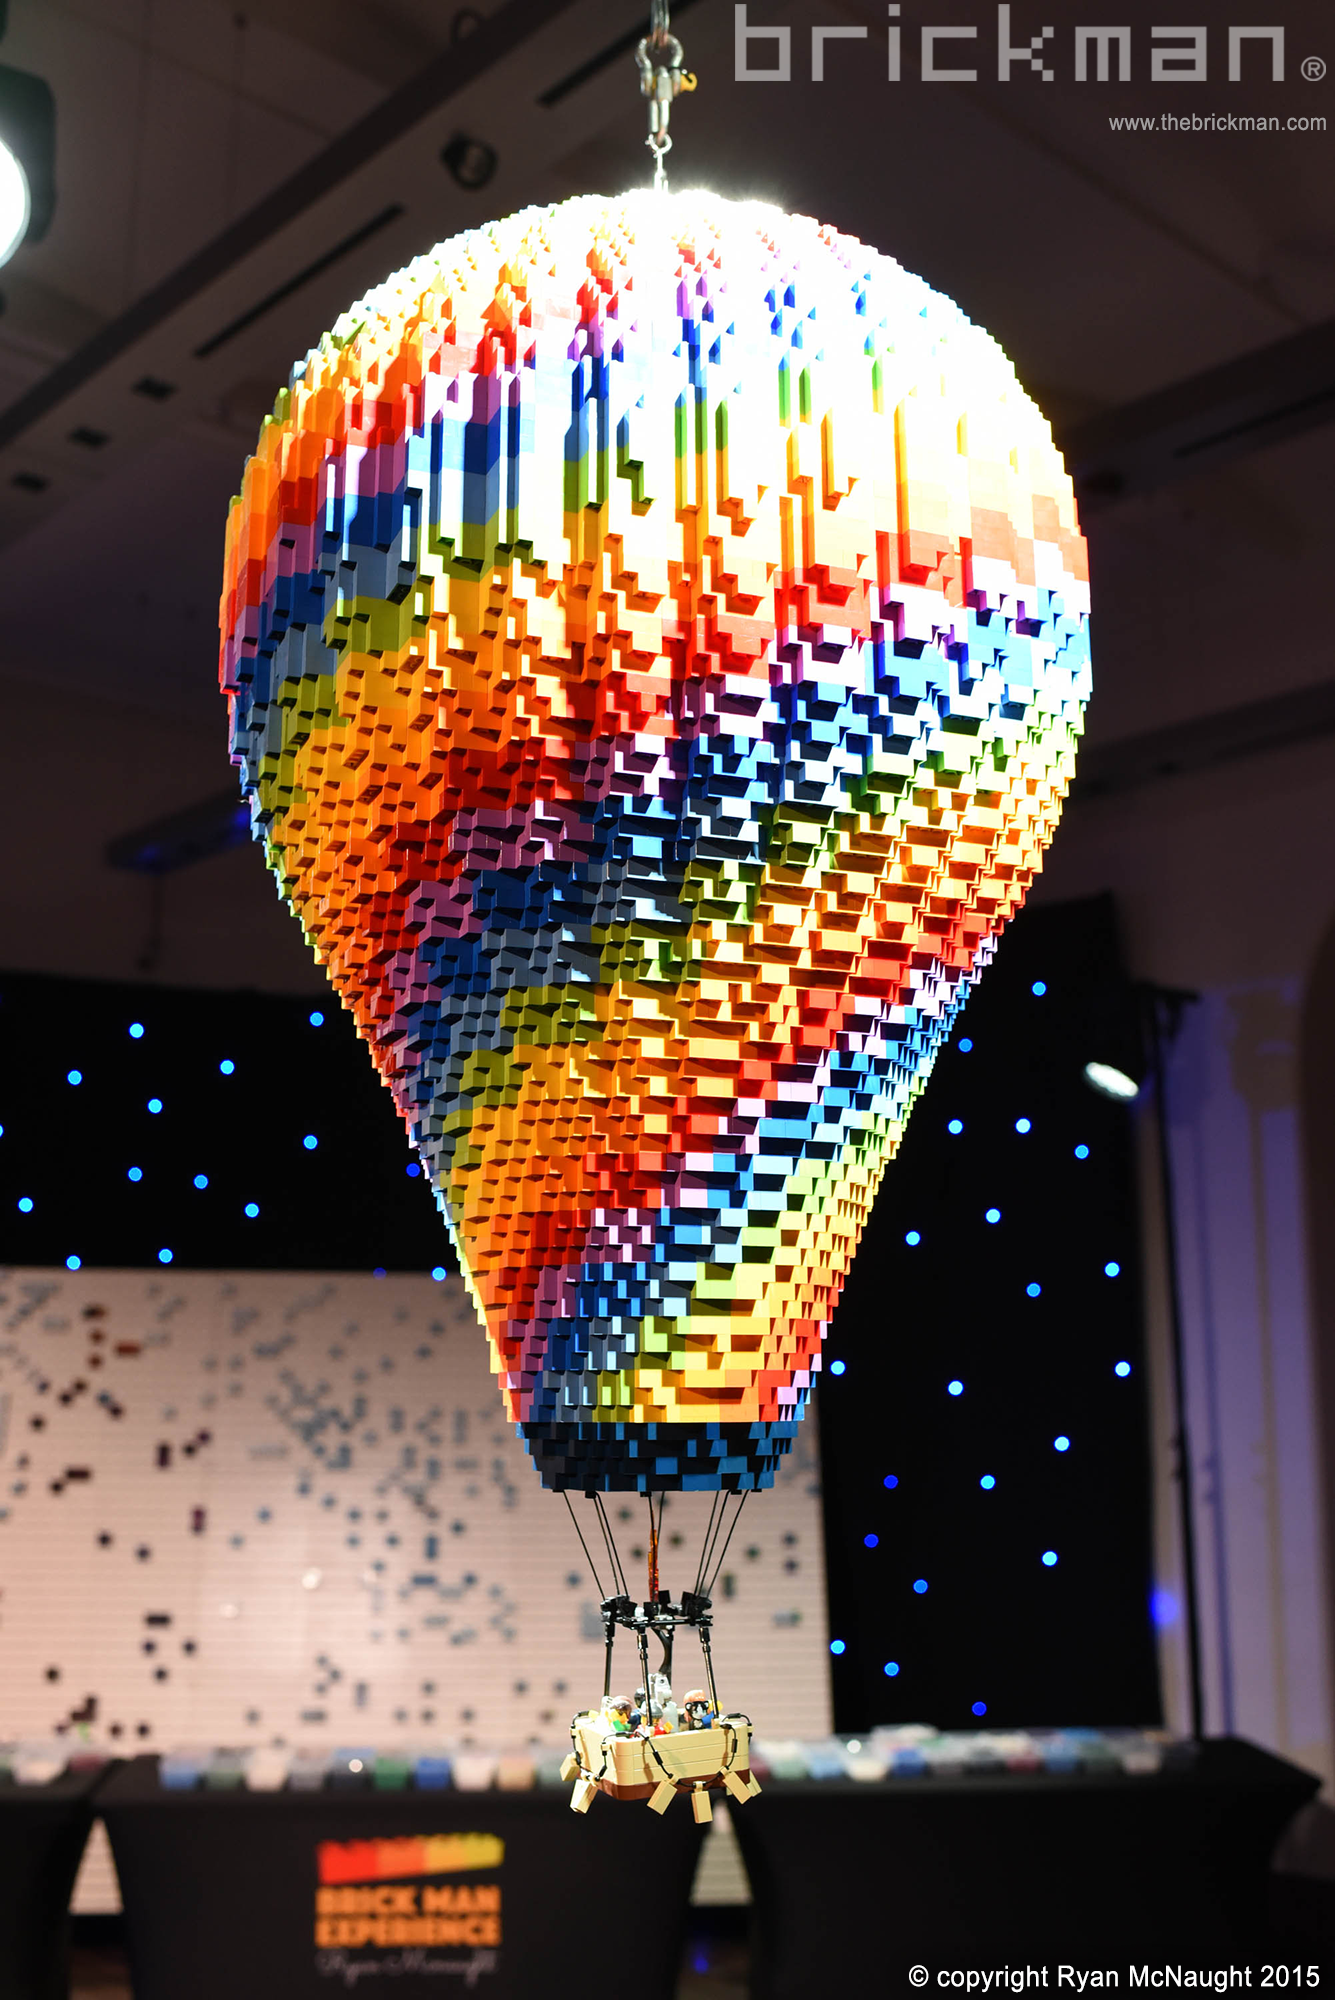 Throwback Thursday: LEGO® brick Hot Air Balloon